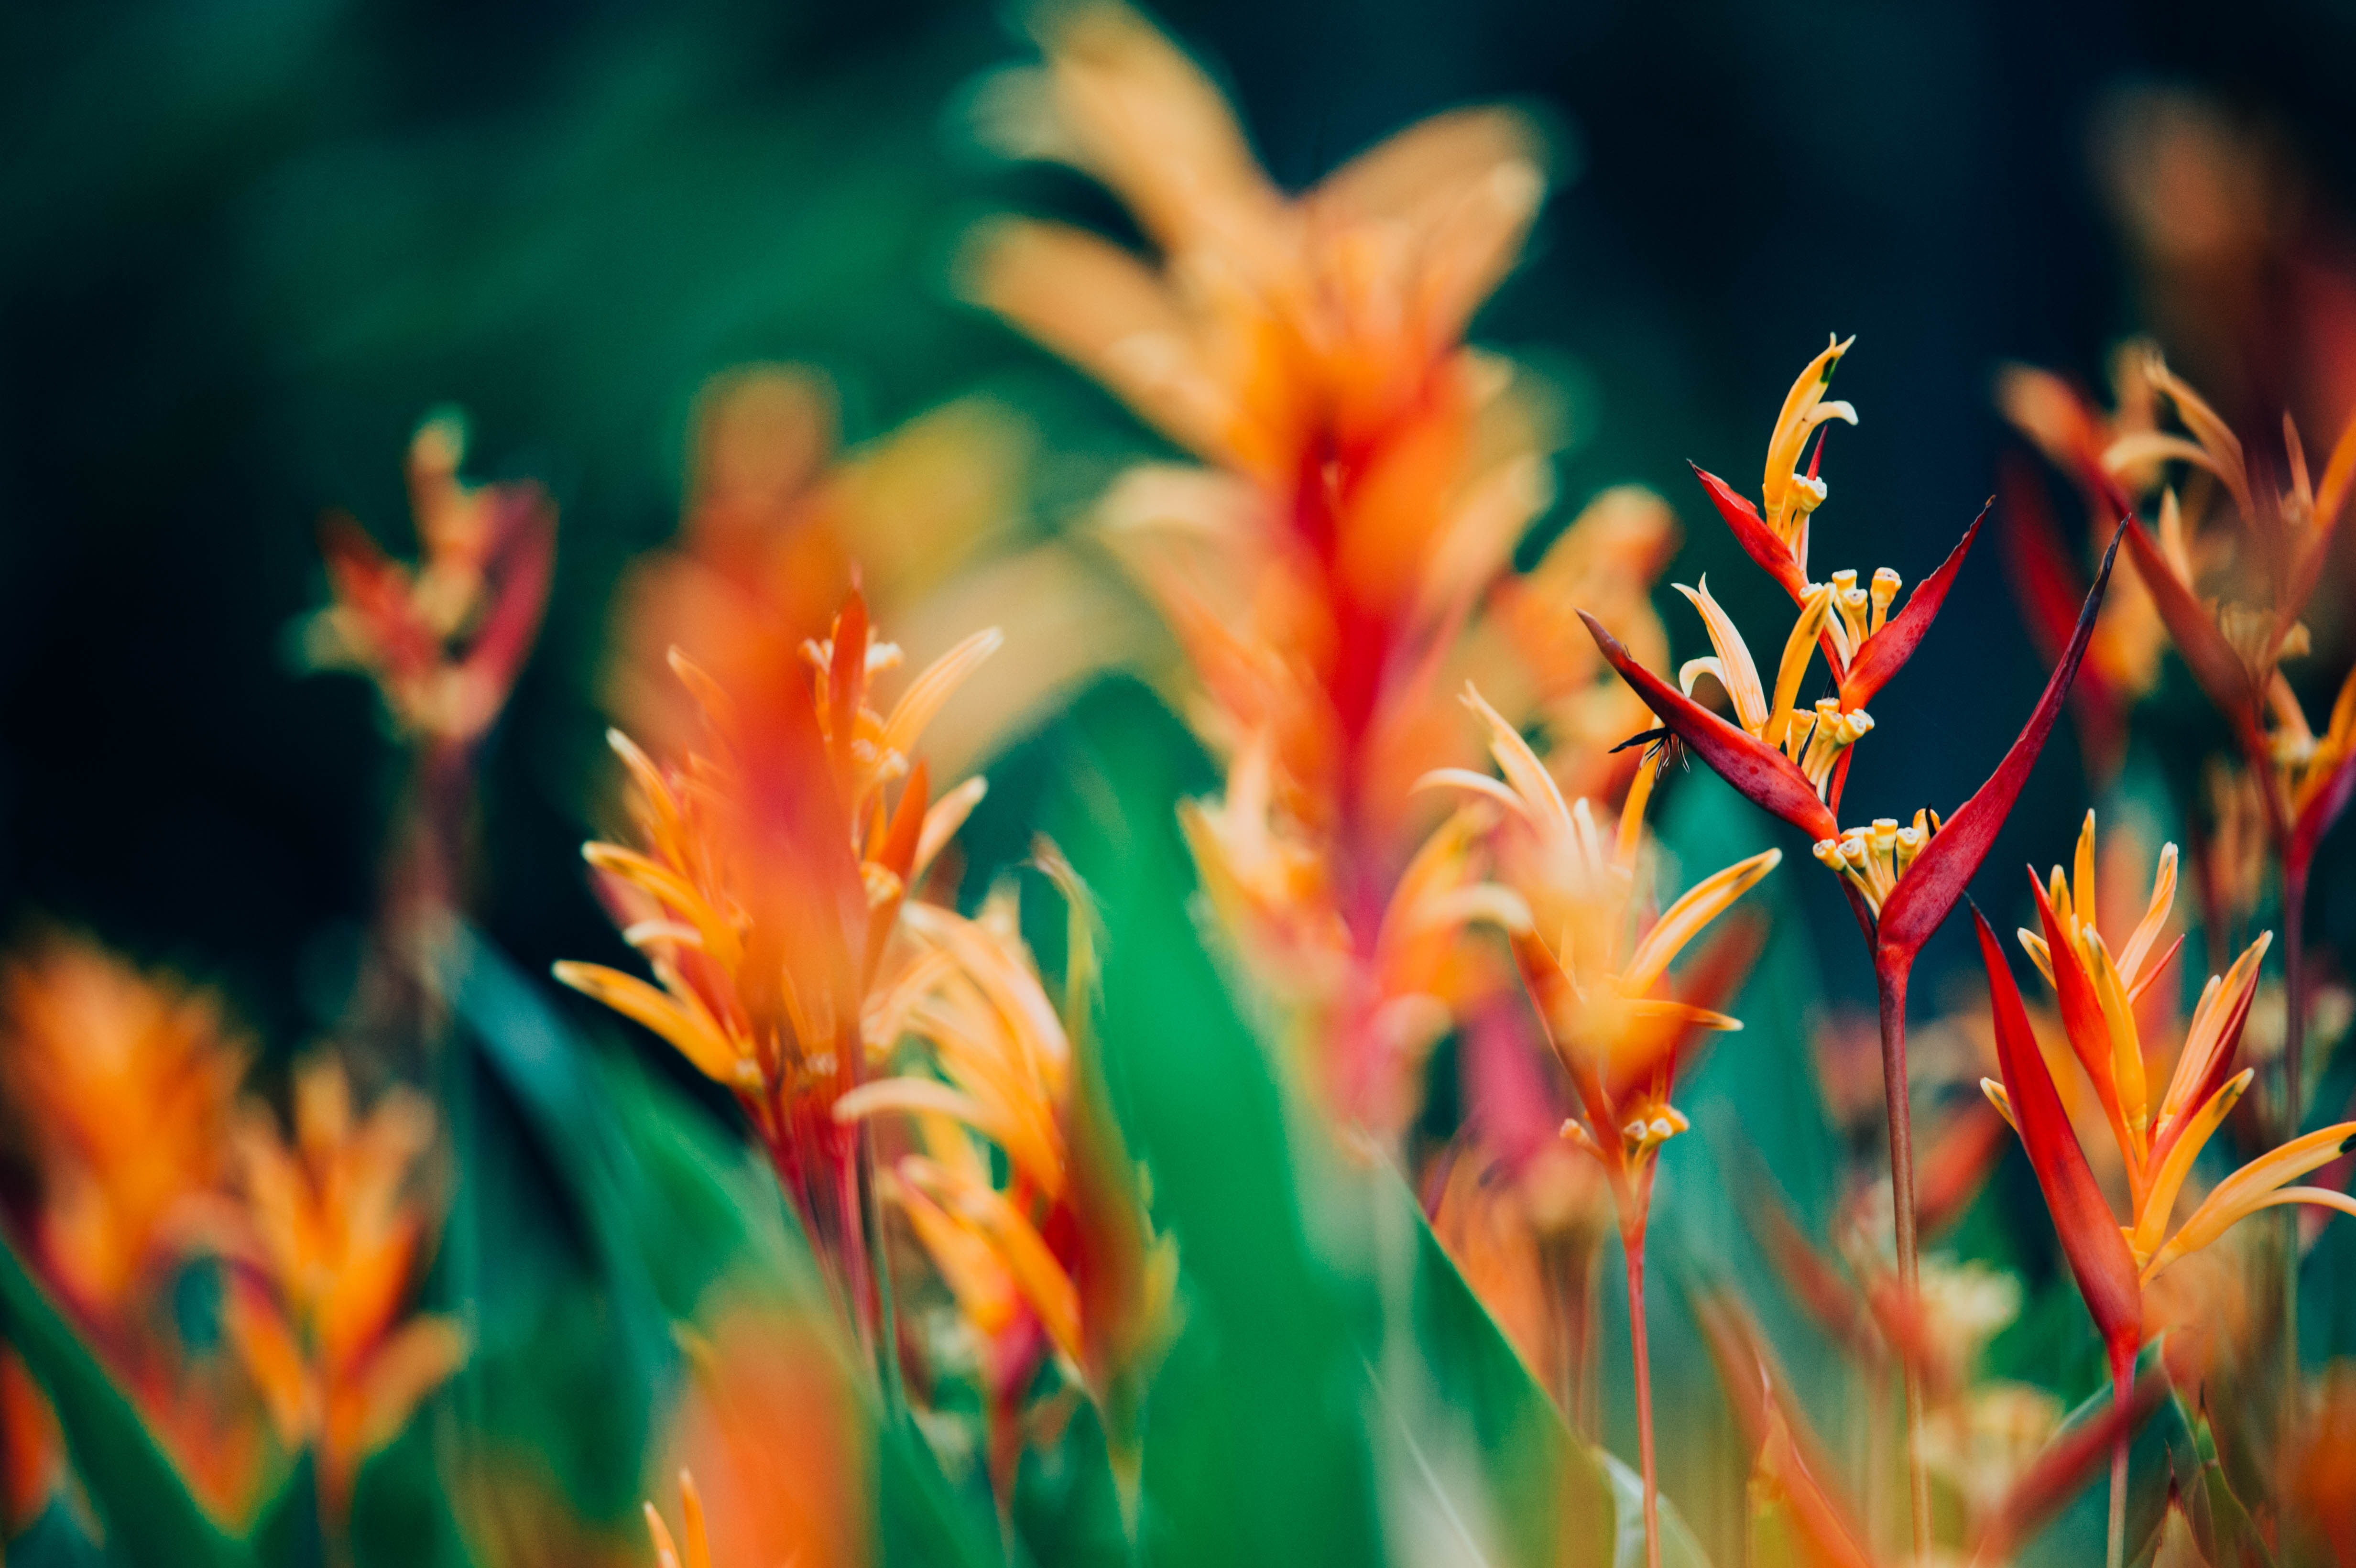 orange and red petaled flowers